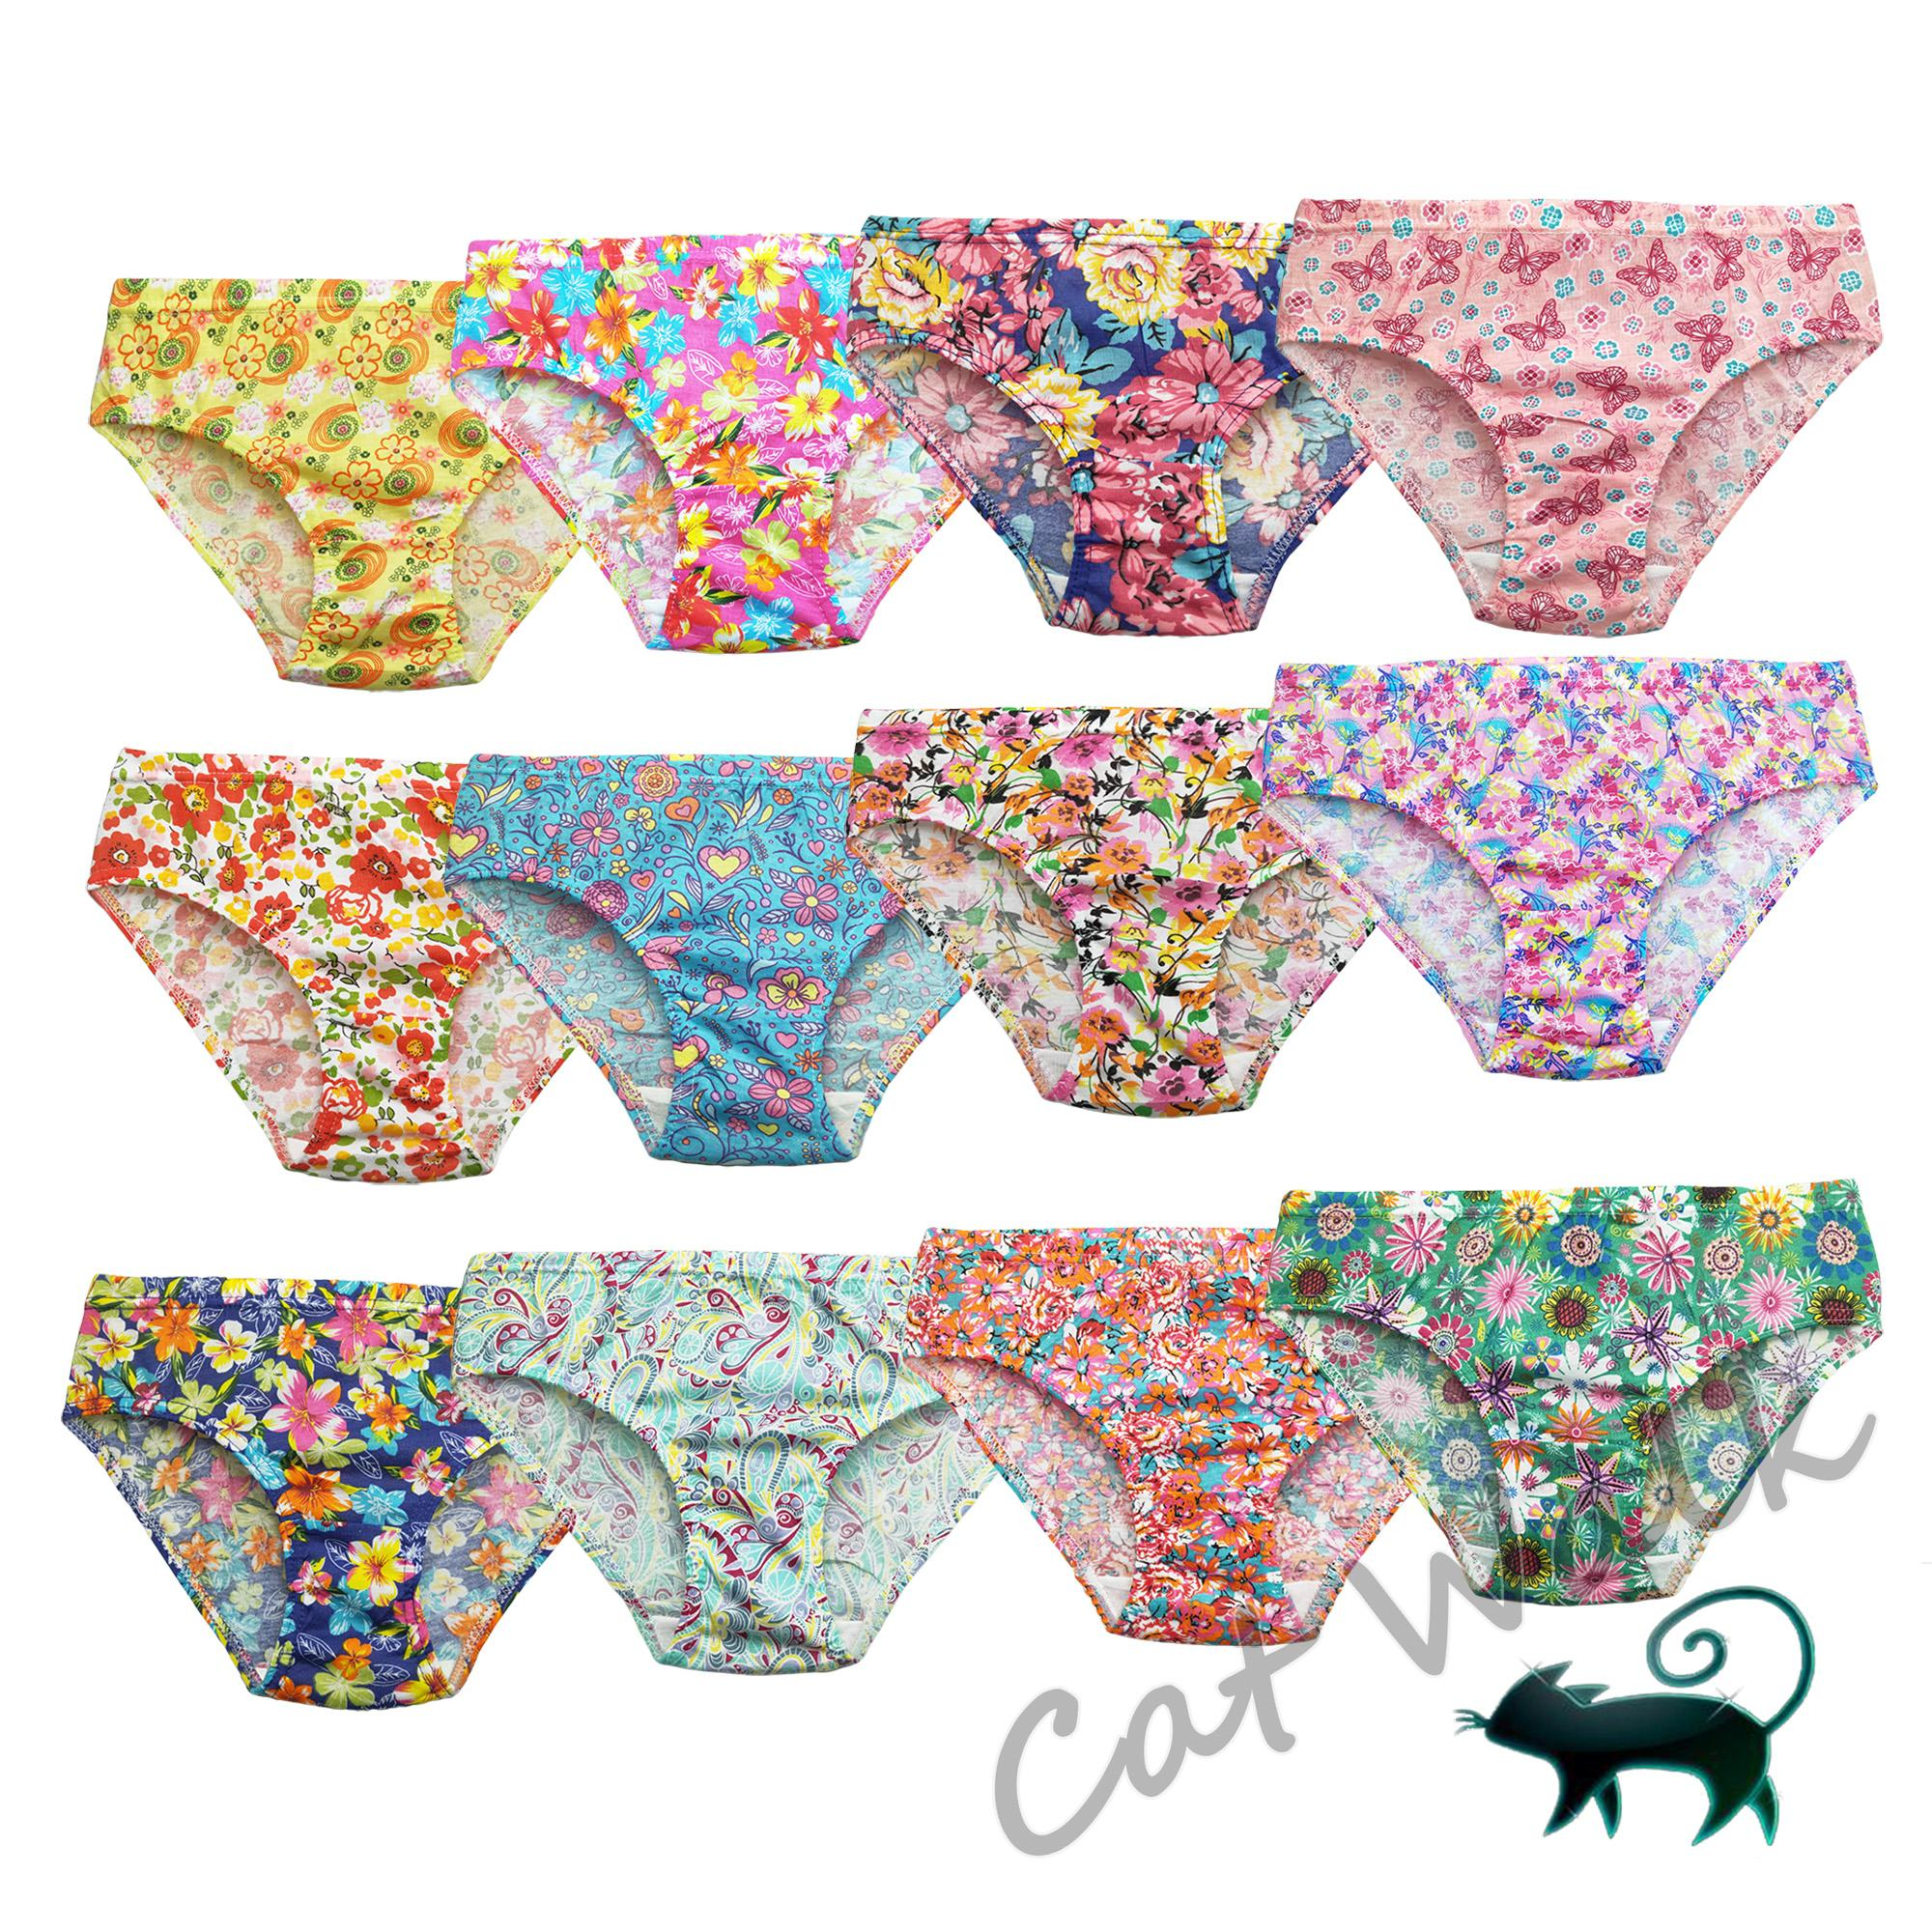 2169766481ac Panties for Women for sale - Womens Panties Online Deals & Prices in ...